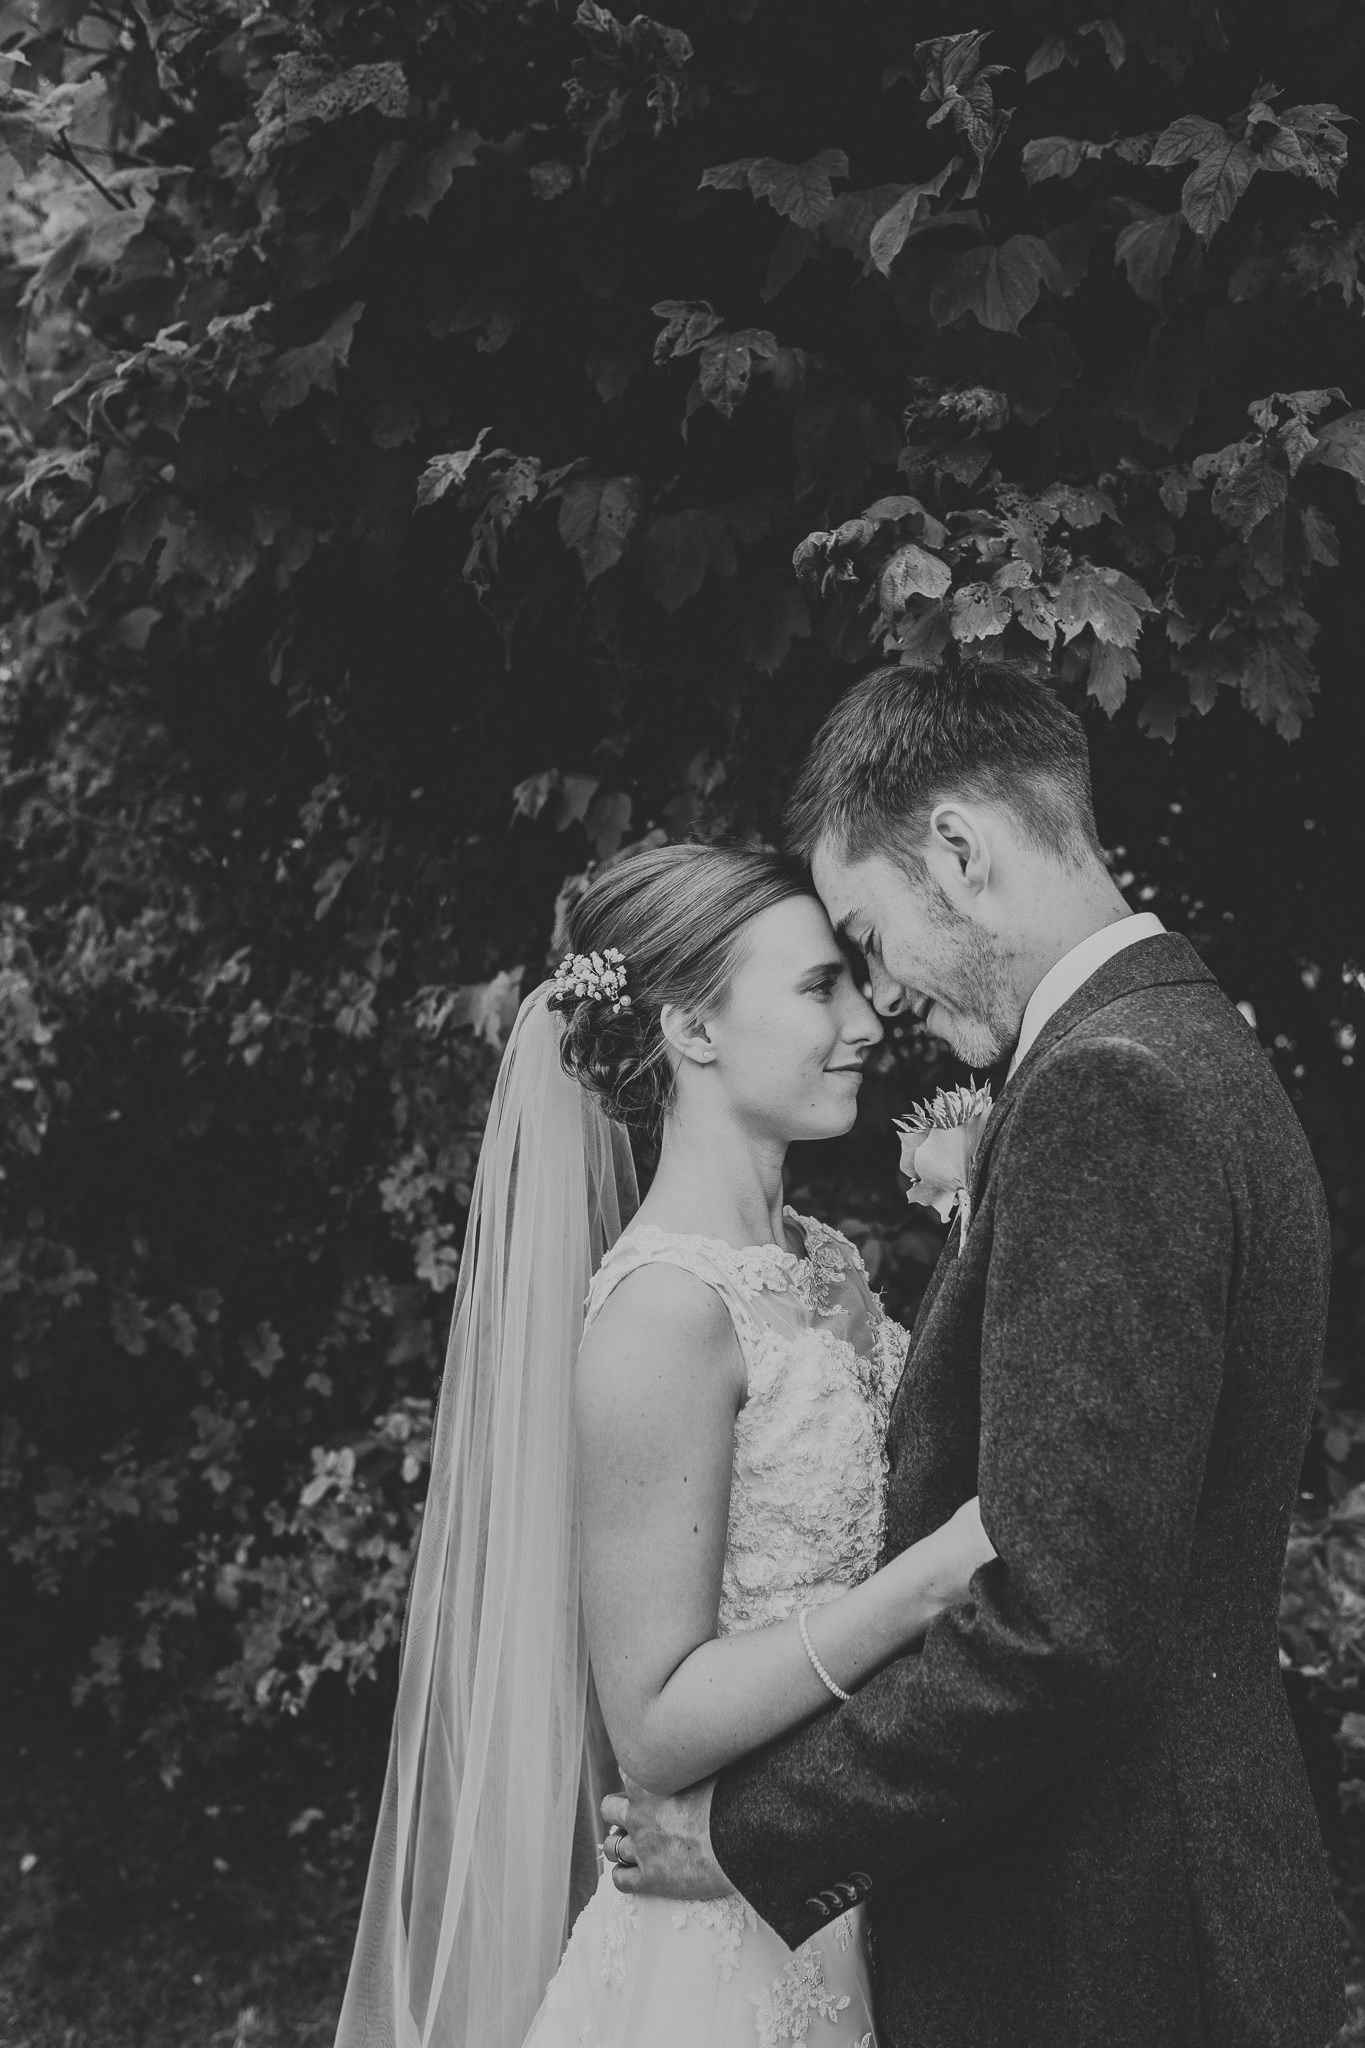 Jess and Ben - Liverpool wedding - black and white bride and groom embracing